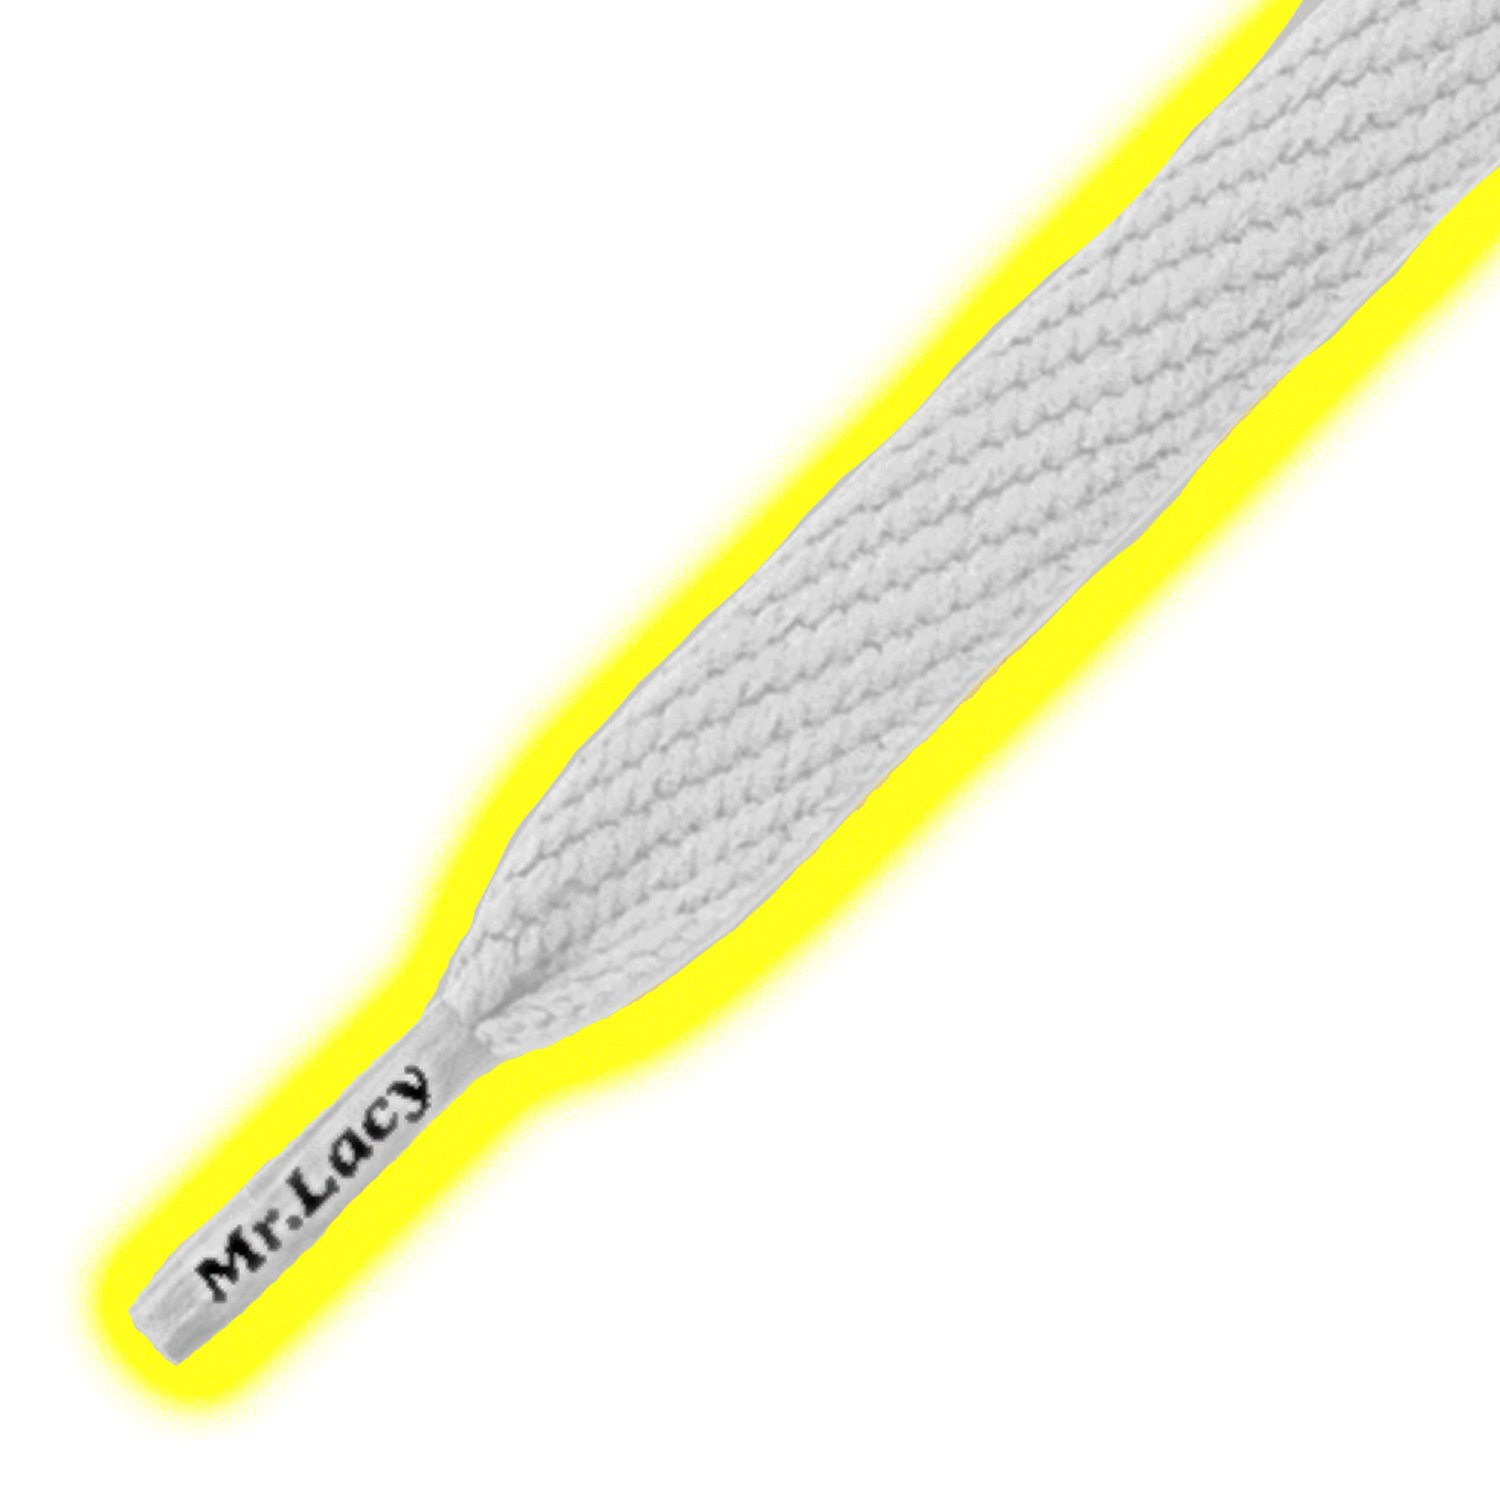 Laces Mr Lacy Flatties Glow Collection Flat Shoelaces Glow in the Blue 130 cm